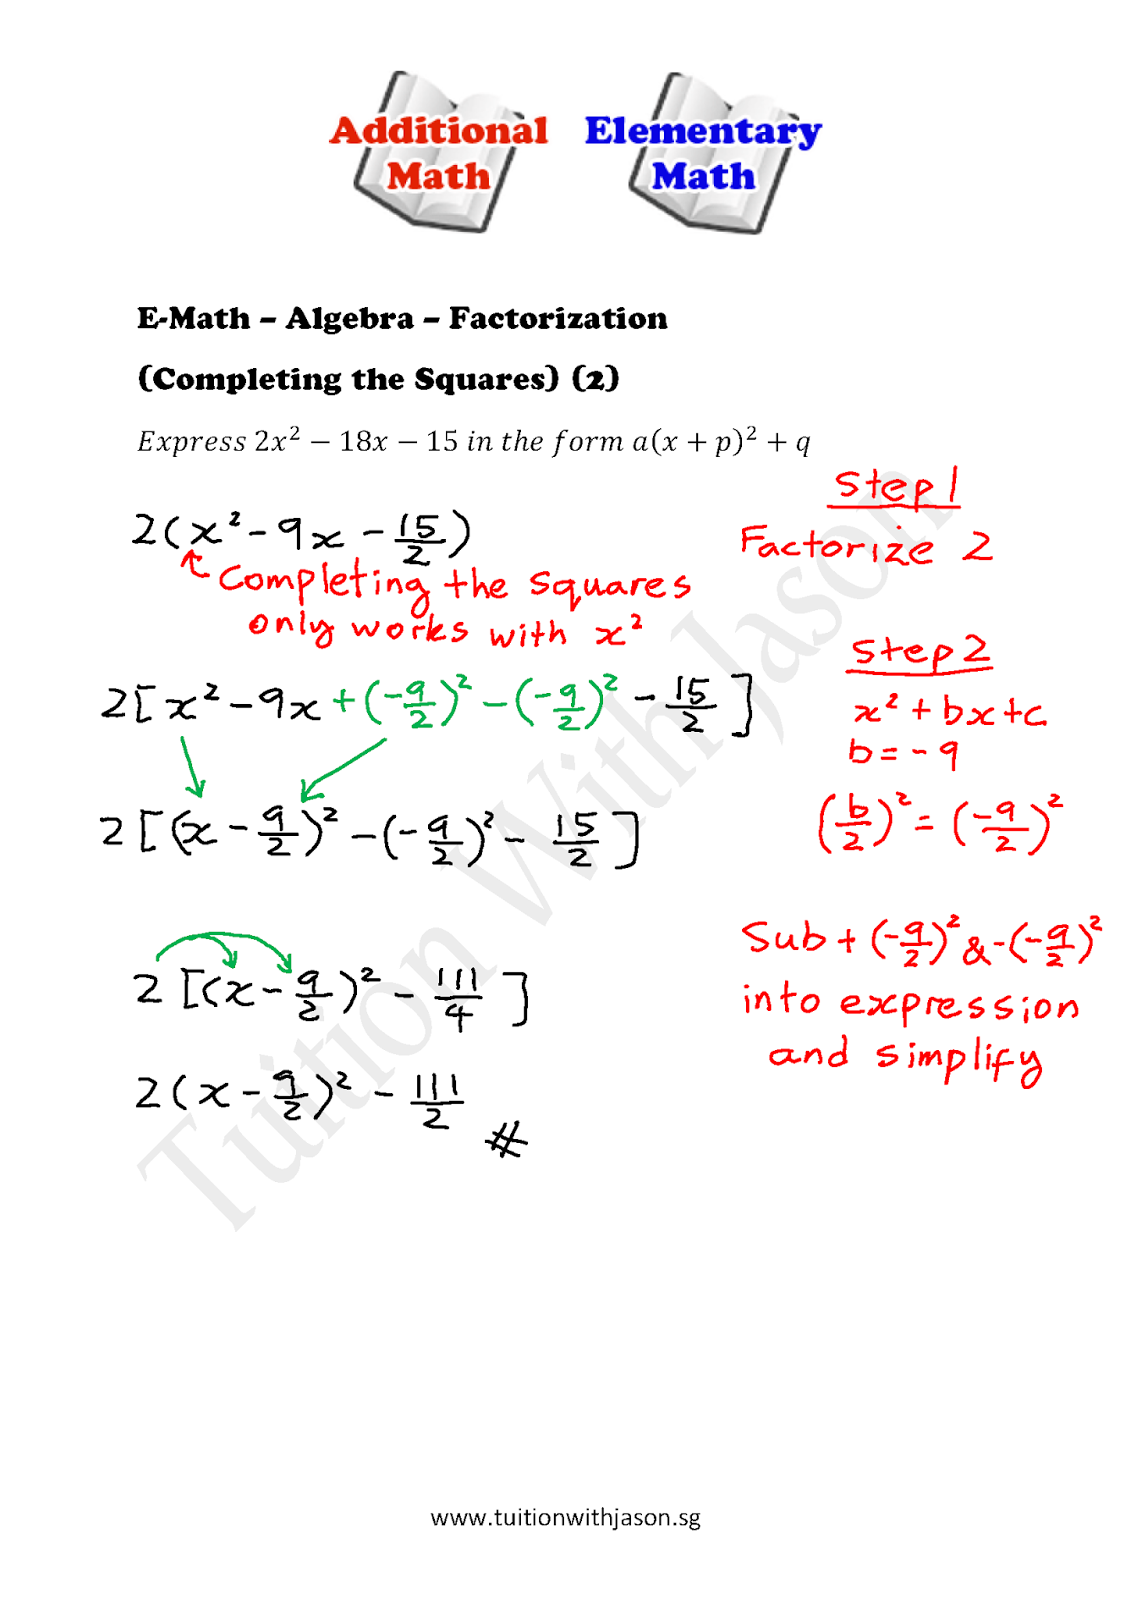 E-Math - Algebra - Factorization - Completing the Squares (2 ...